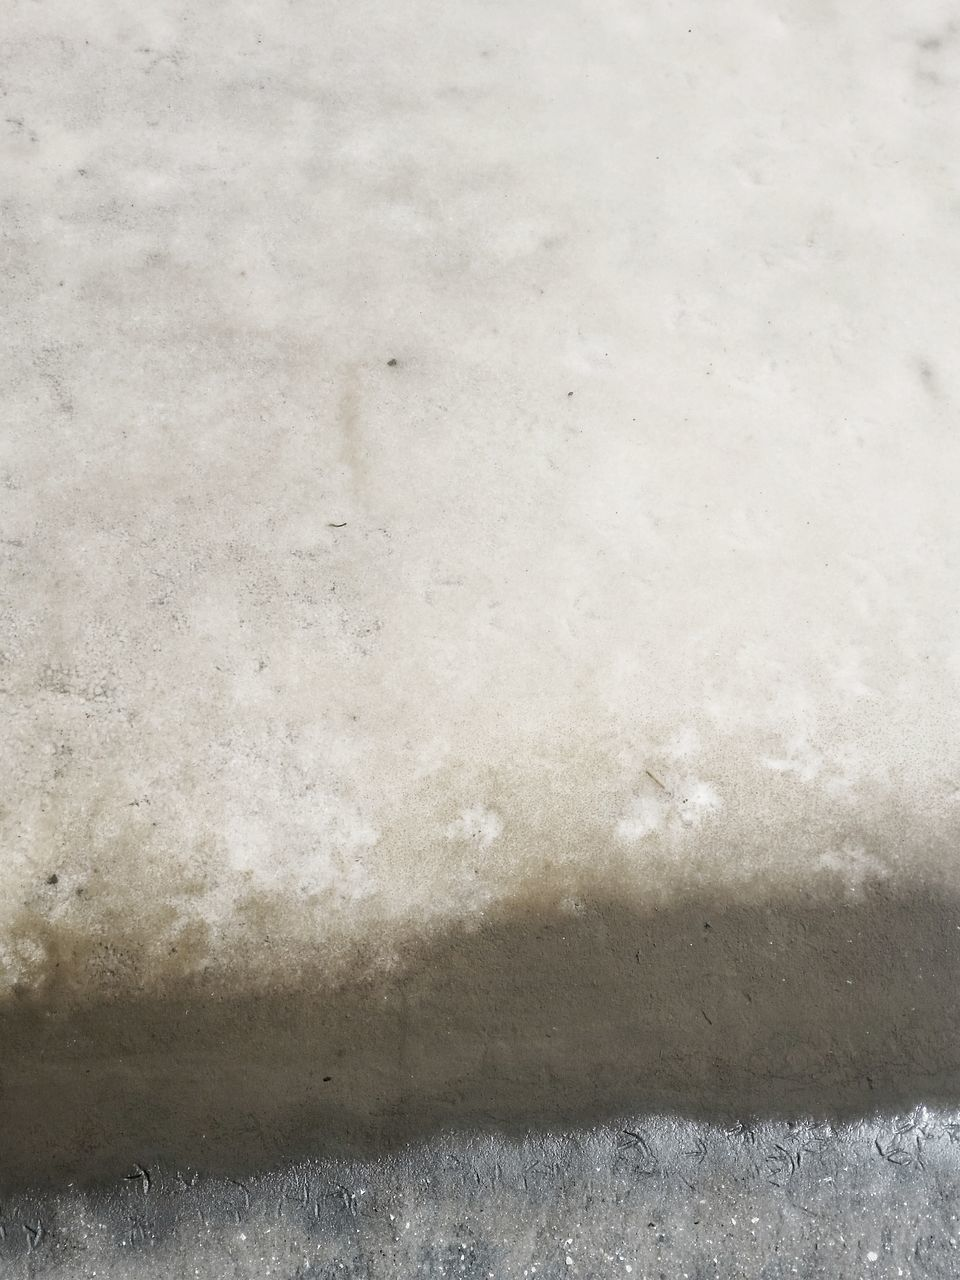 CLOSE-UP OF SNOW ON WALL